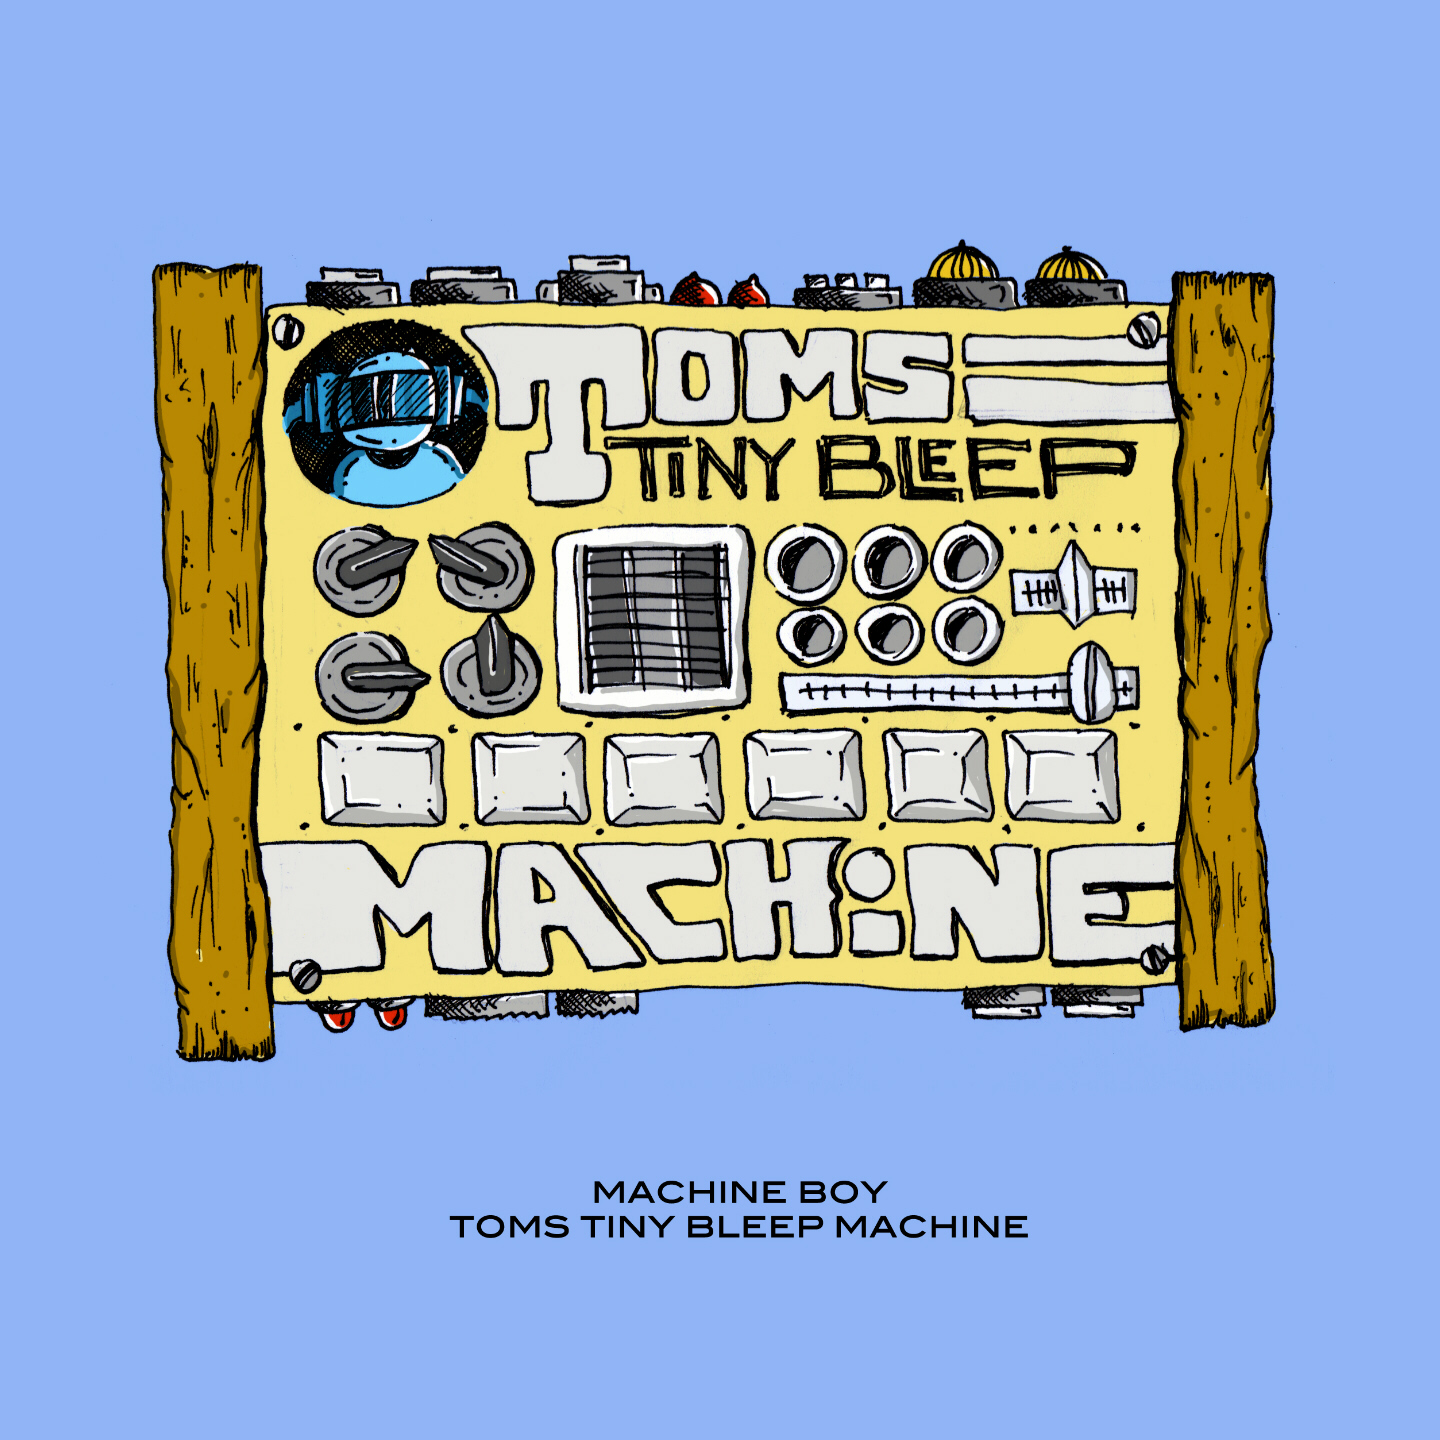 Machine Boy Toms Tiny Bleep Machine